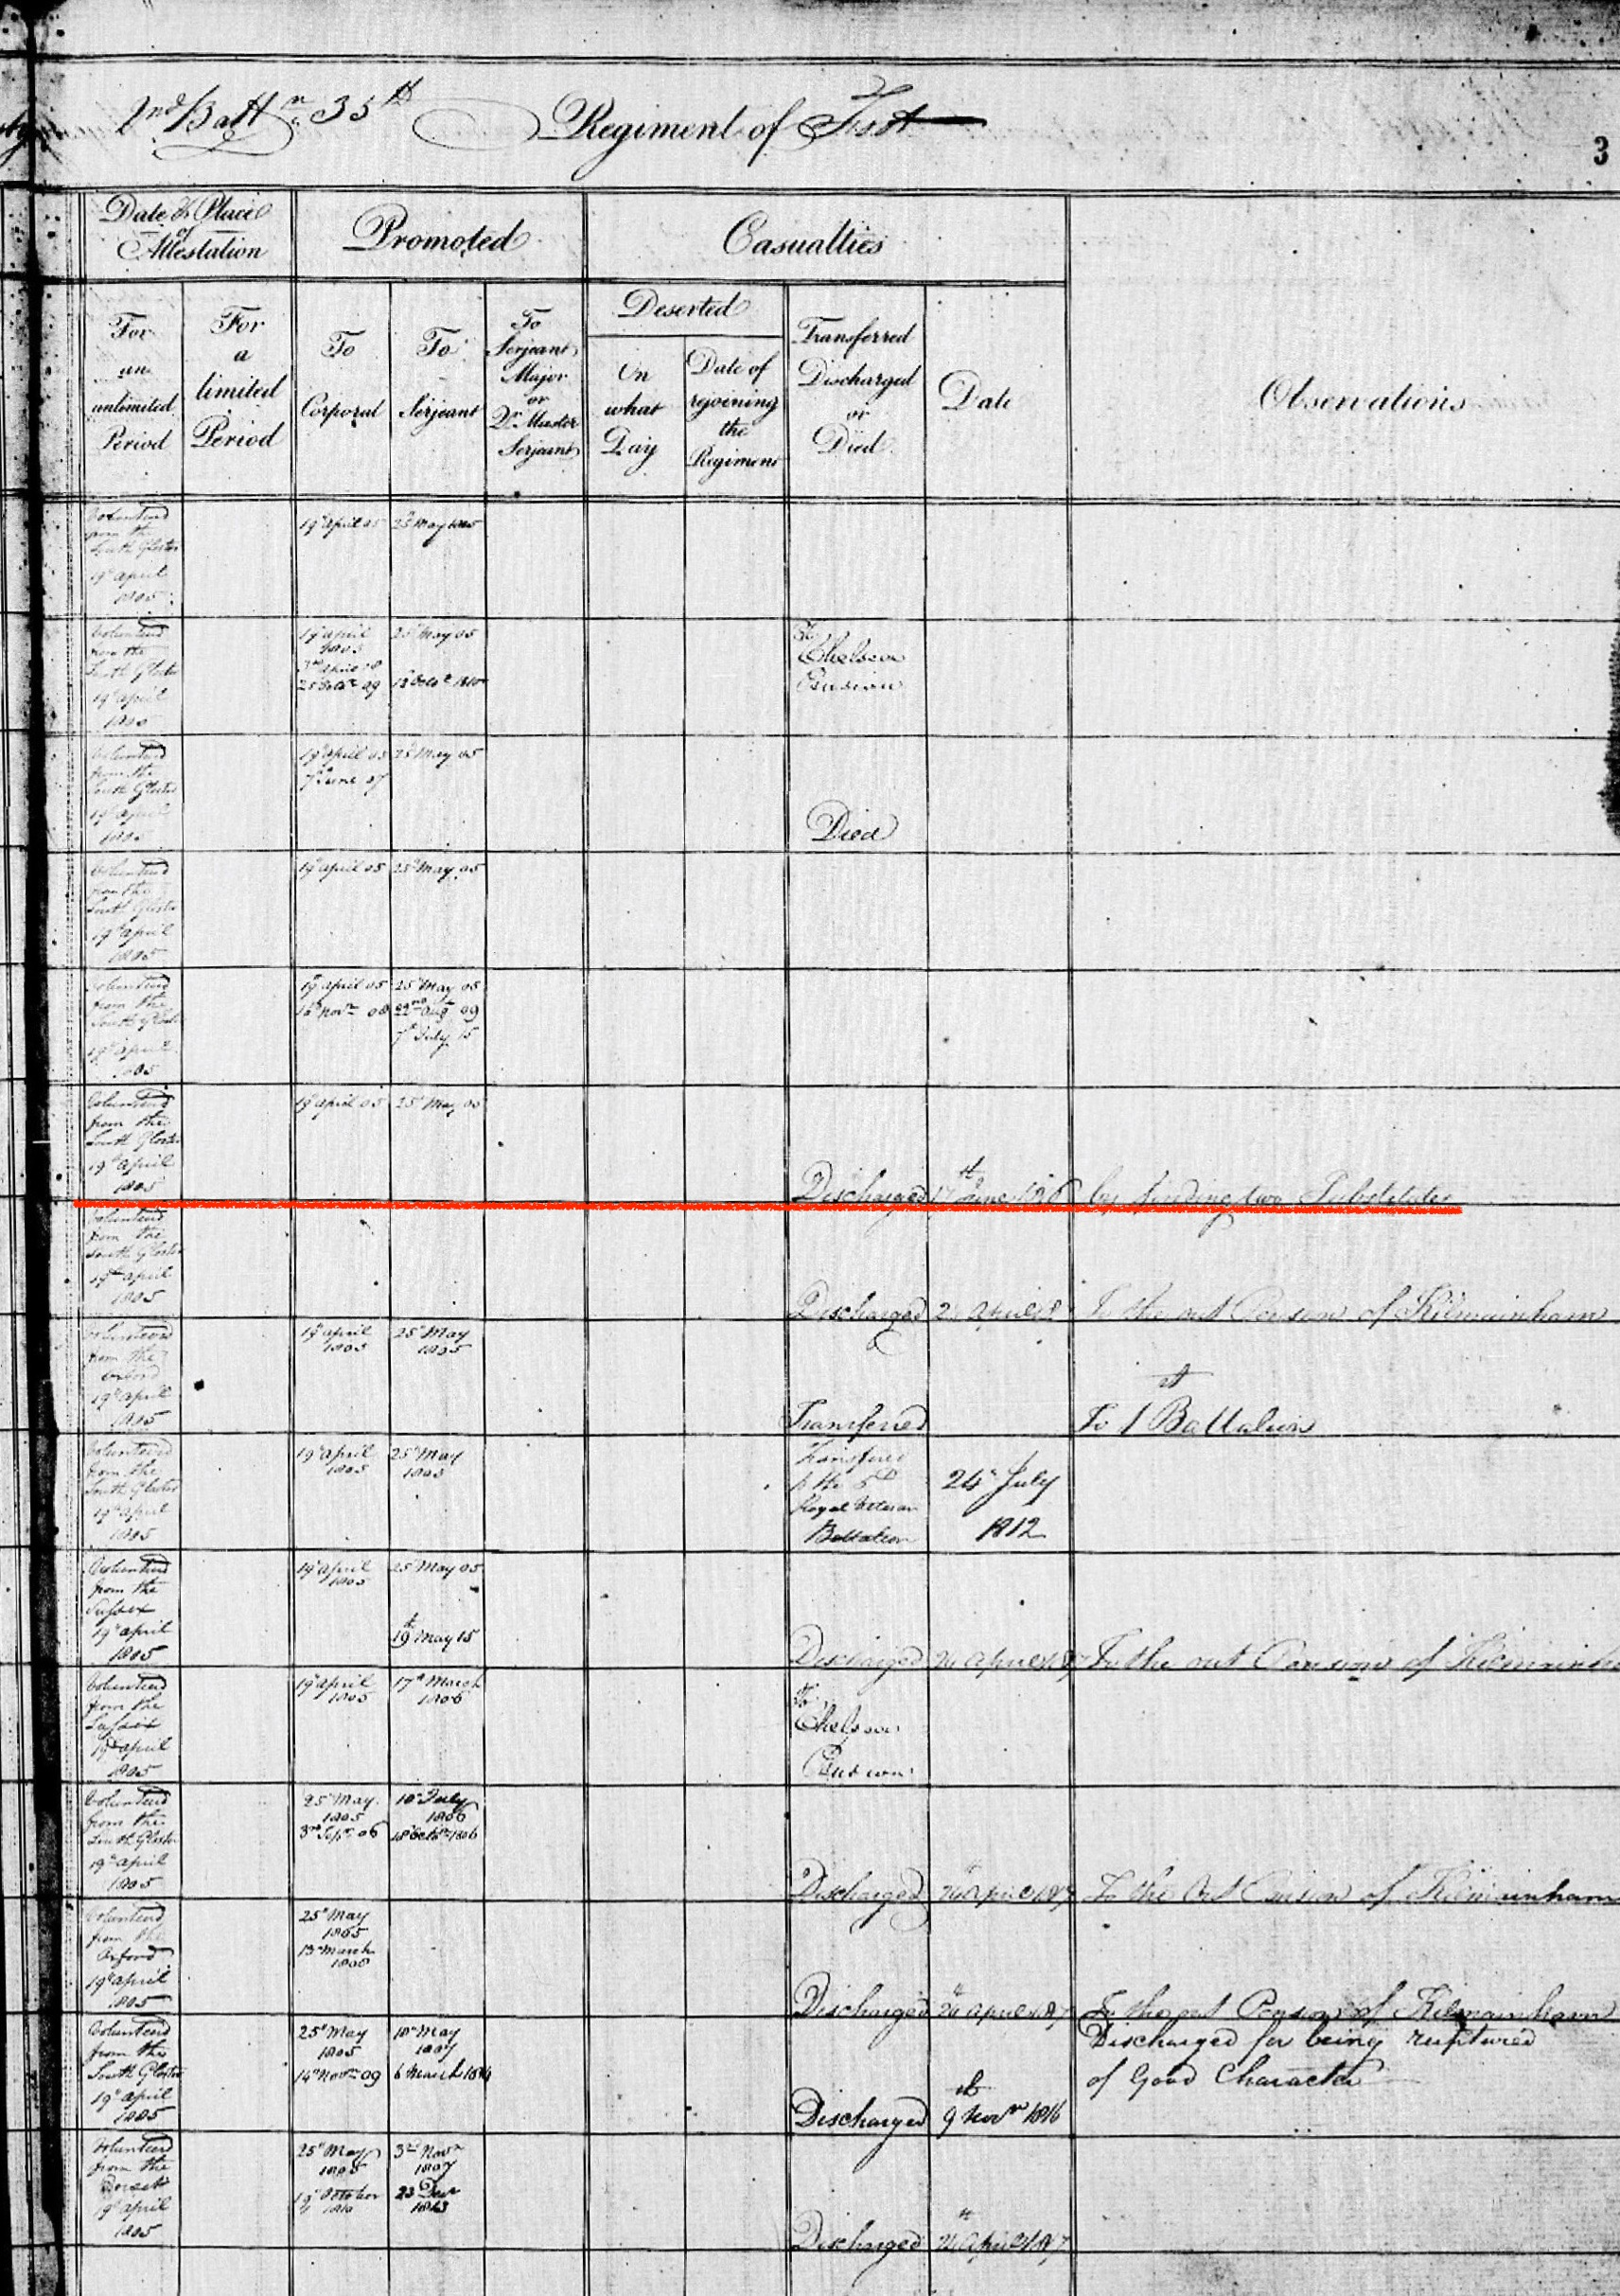 Frederick Summers' Muster Record (Page 2)